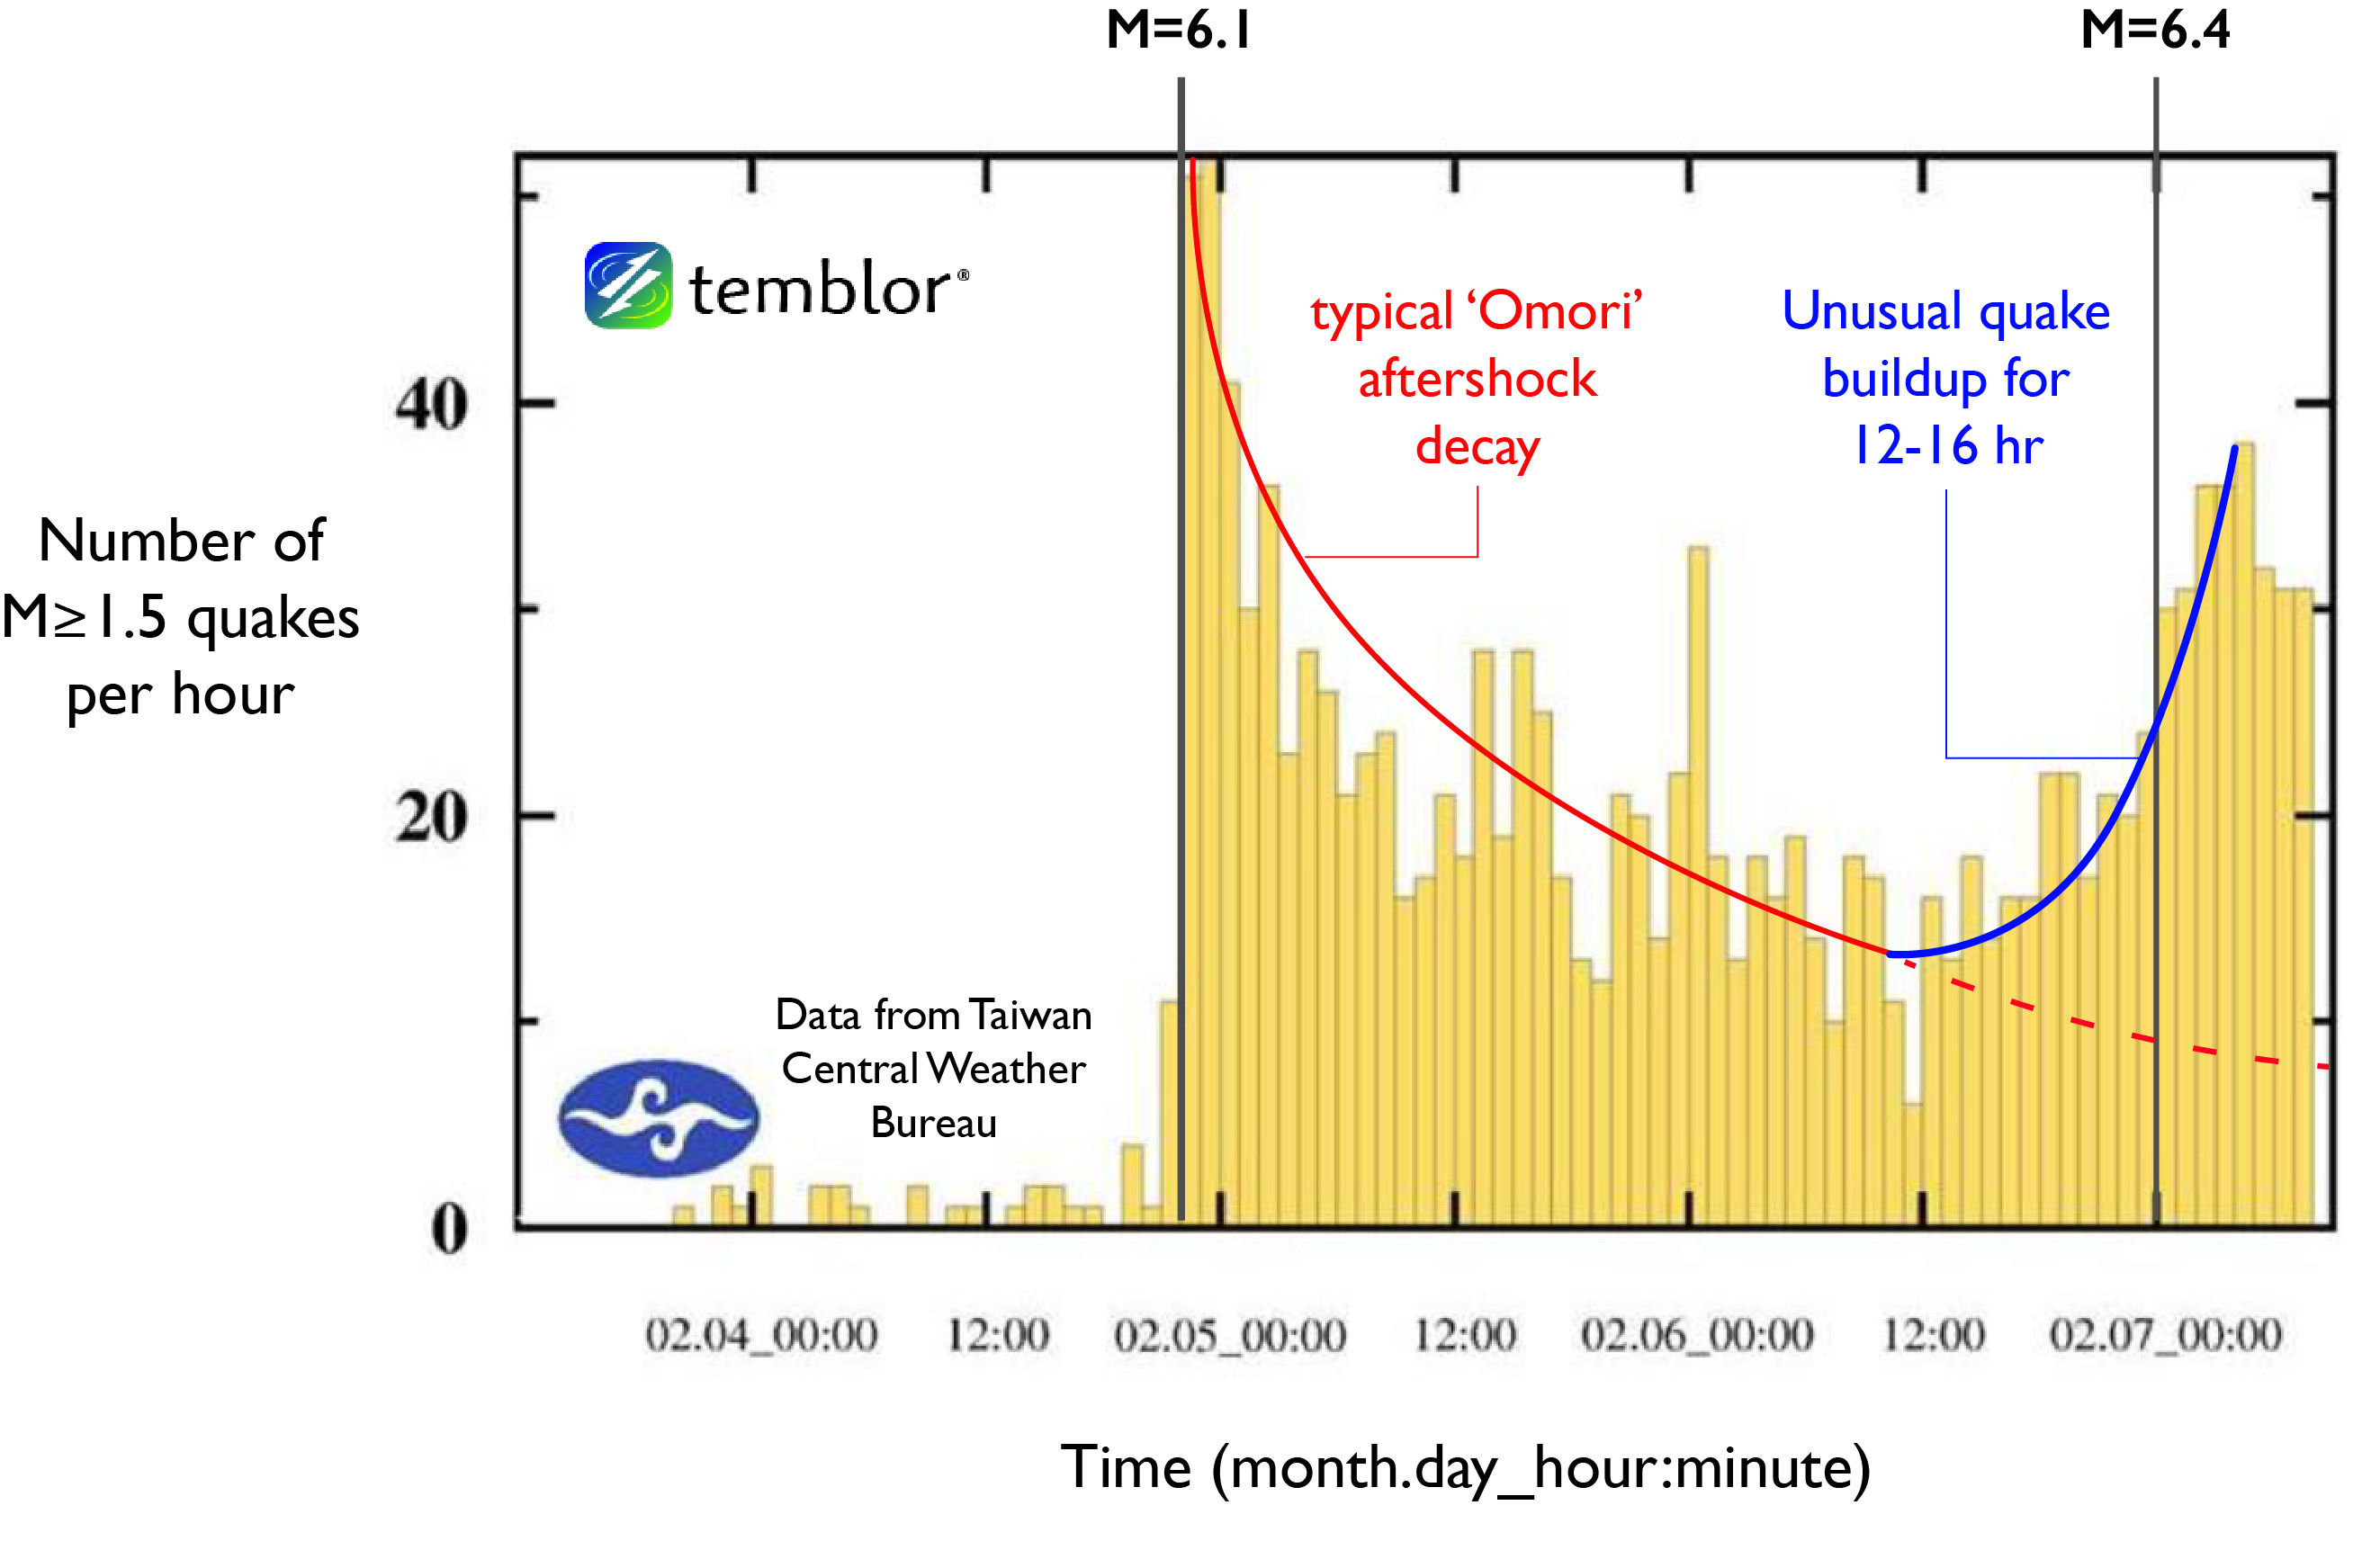 This figure shows an earthquake time series beginning about a day before Sunday's M=6.1 earthquake. Unlike a typical aftershock decay, the one following the M=6.1 shows an unusual quake buildup beginning about 12 hours prior to Tuesday's M=6.4. It should be pointed out that there is no increase in GPS velocities associated with this increase in rate of earthquakes.